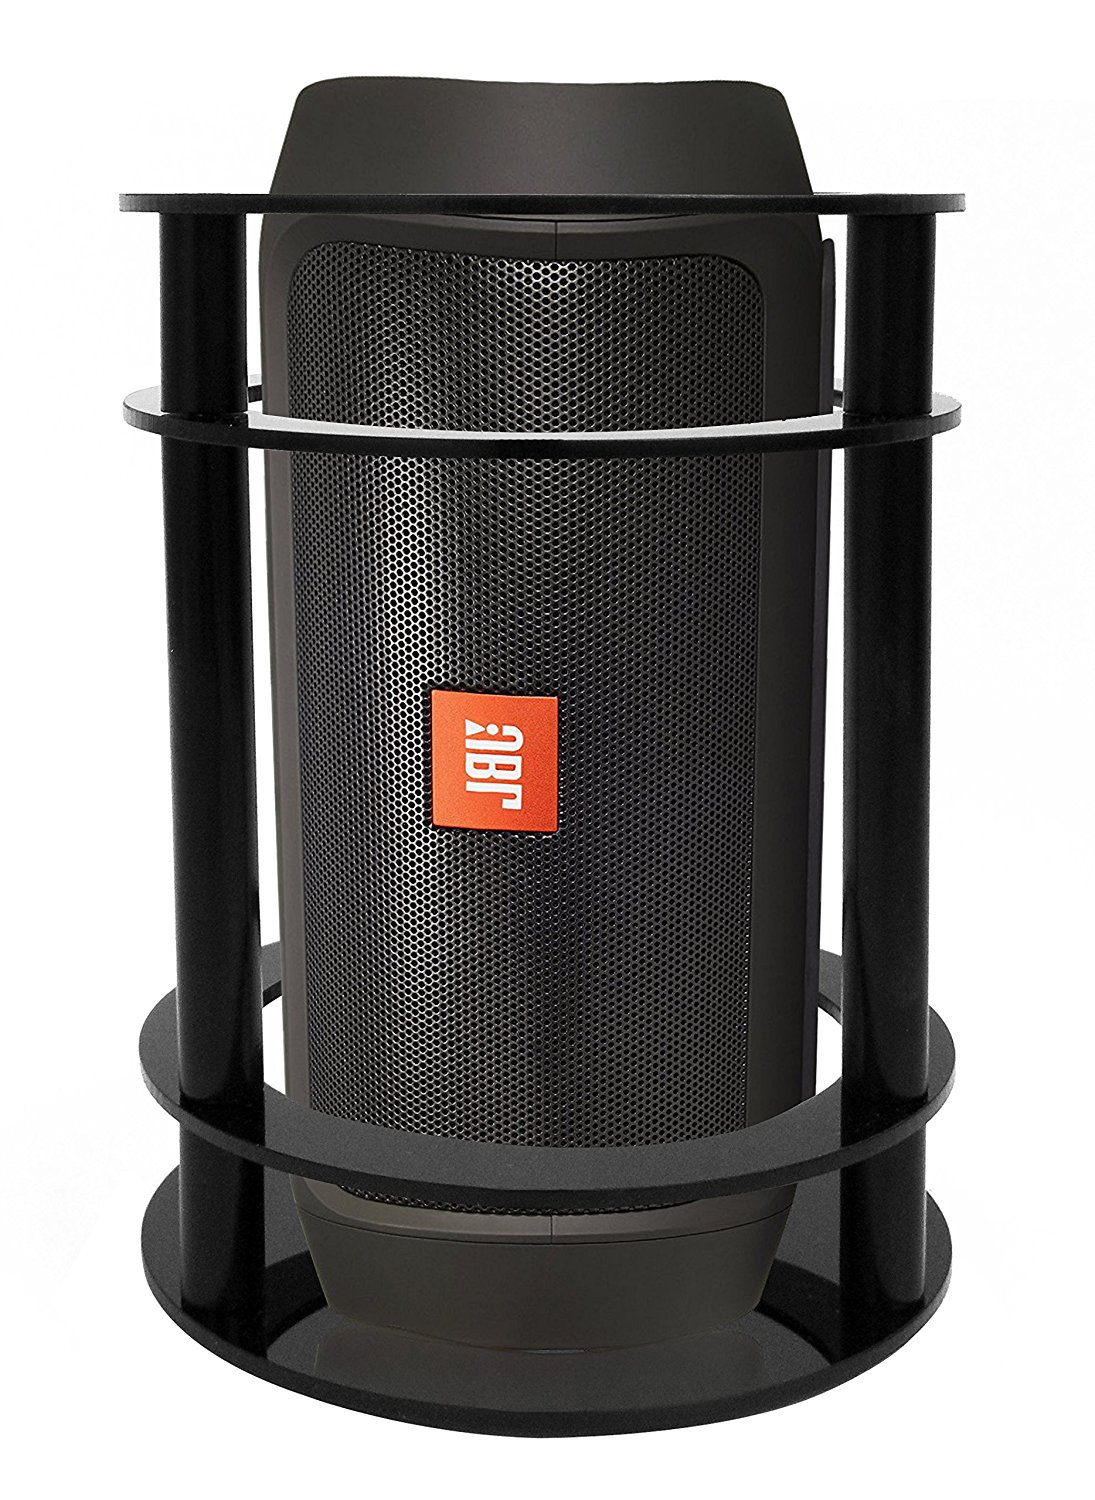 Cheap Jbl Charge Speaker Find Deals On Line At Mini Portable Wireless Charger 1 Get Quotations Fitsand Stand Guard Station For 2 Splashproof Bluetooth Enhanced